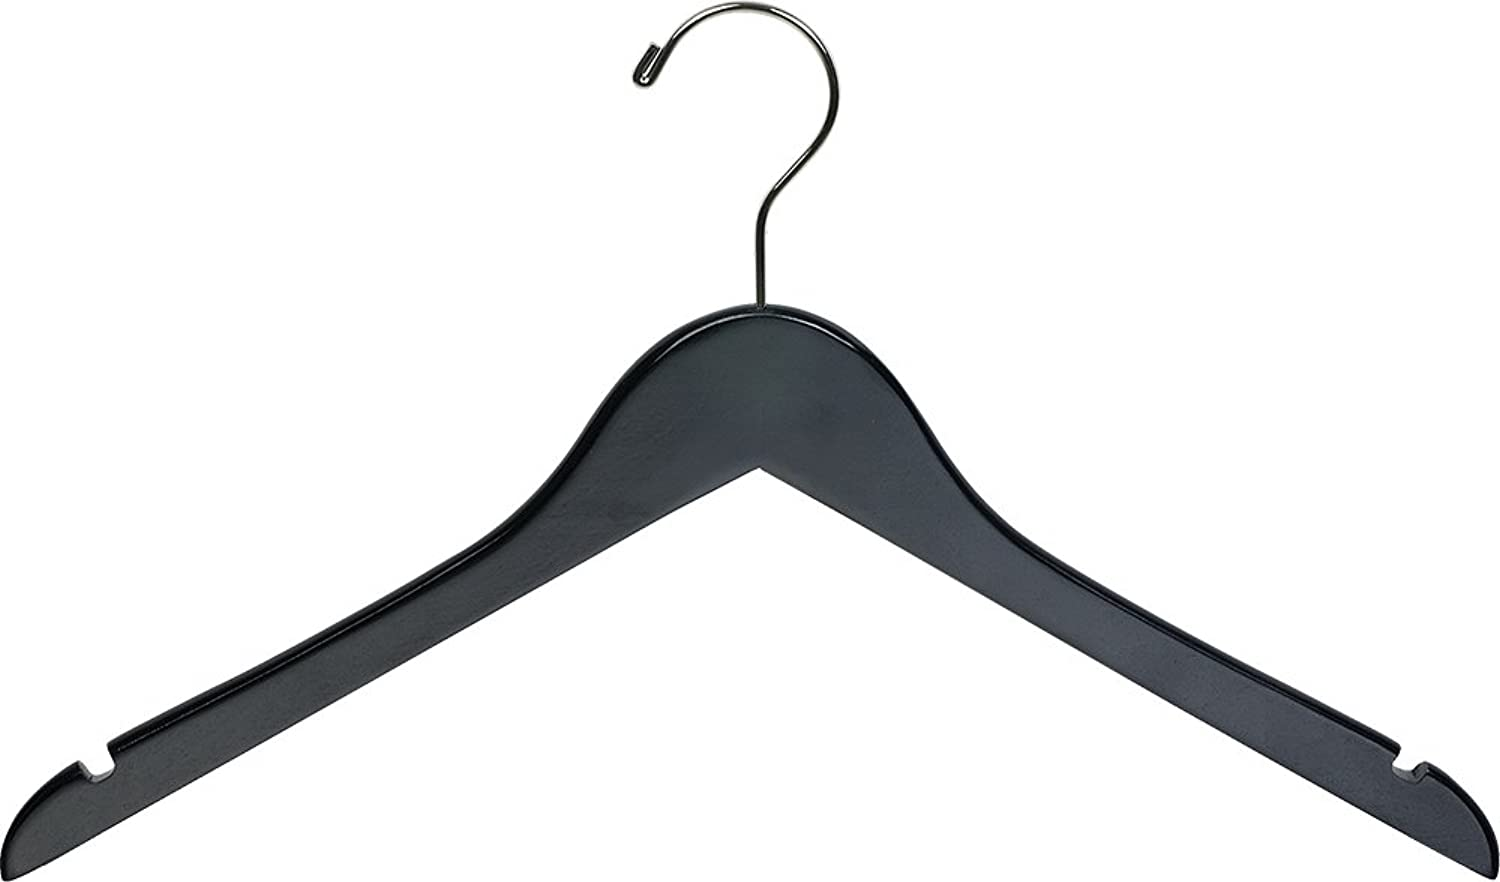 The Great American Hanger Company Black Wood Top Hanger, Box of 100 Space Saving 17 Inch Flat Wooden Hangers w Chrome Swivel Hook & Notches for Shirt Jacket or Dress